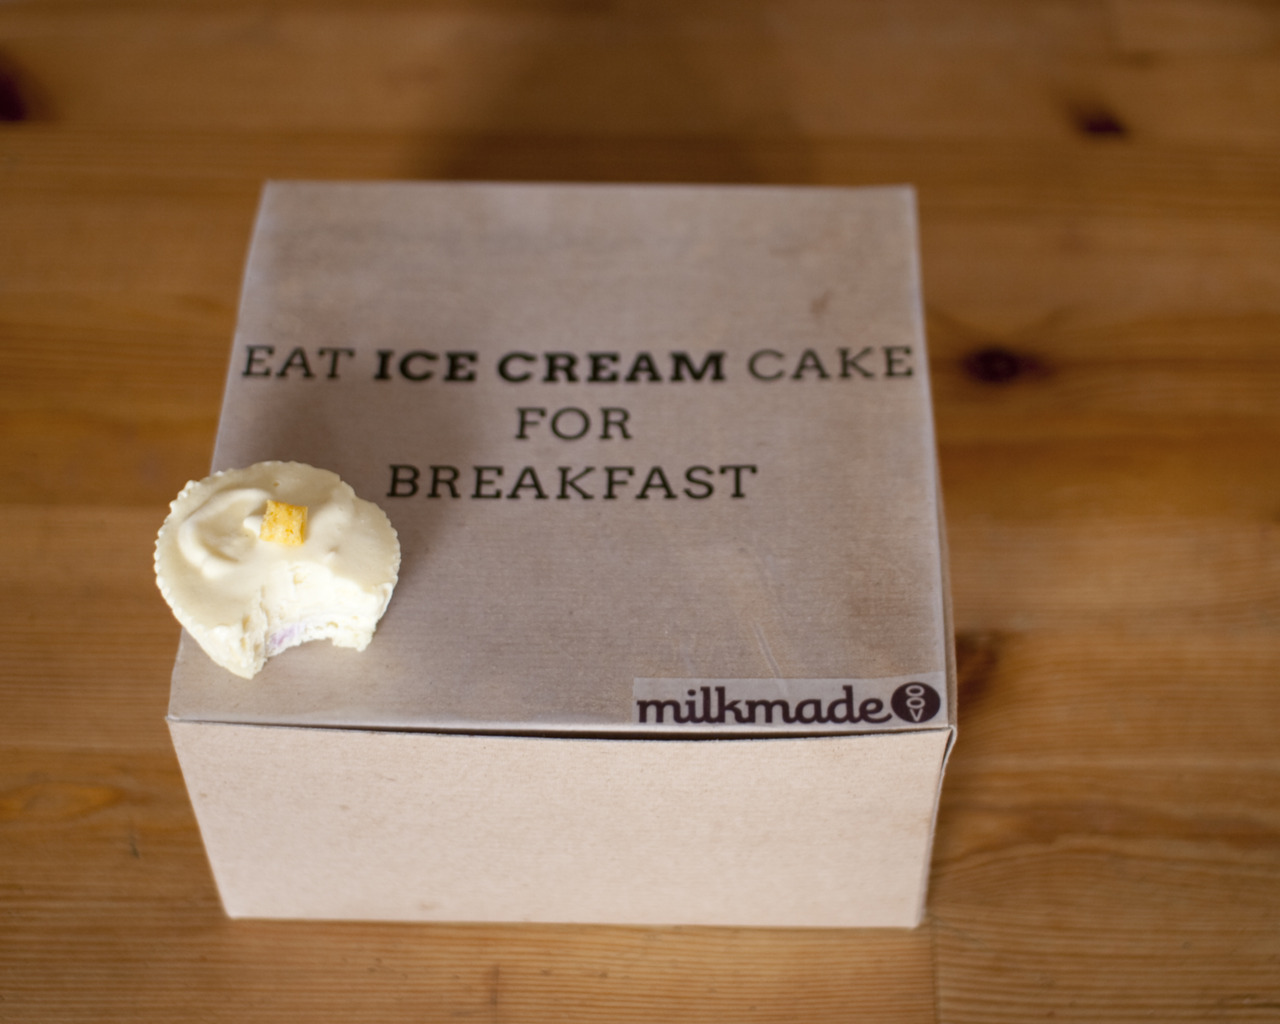 milkmade flavor of the day: Eat Ice Cream Cake for Breakfastvanilla-berry swirl cupcake bottom, Cap'N Crunch ice cream topToday we're having a little ice cream social over at Kate Spade. To honor their slogan, Eat Cake for Breakfast, we crafted up this little flavor. And changed it a bit to EAT ICE CREAM CAKE FOR BREAKFAST. This is our Crunch Berry Ice Cream (remember that?), but in ice cream cupcake form. And it's awesome. Here's more:    And yes, we ate one for breakfast.